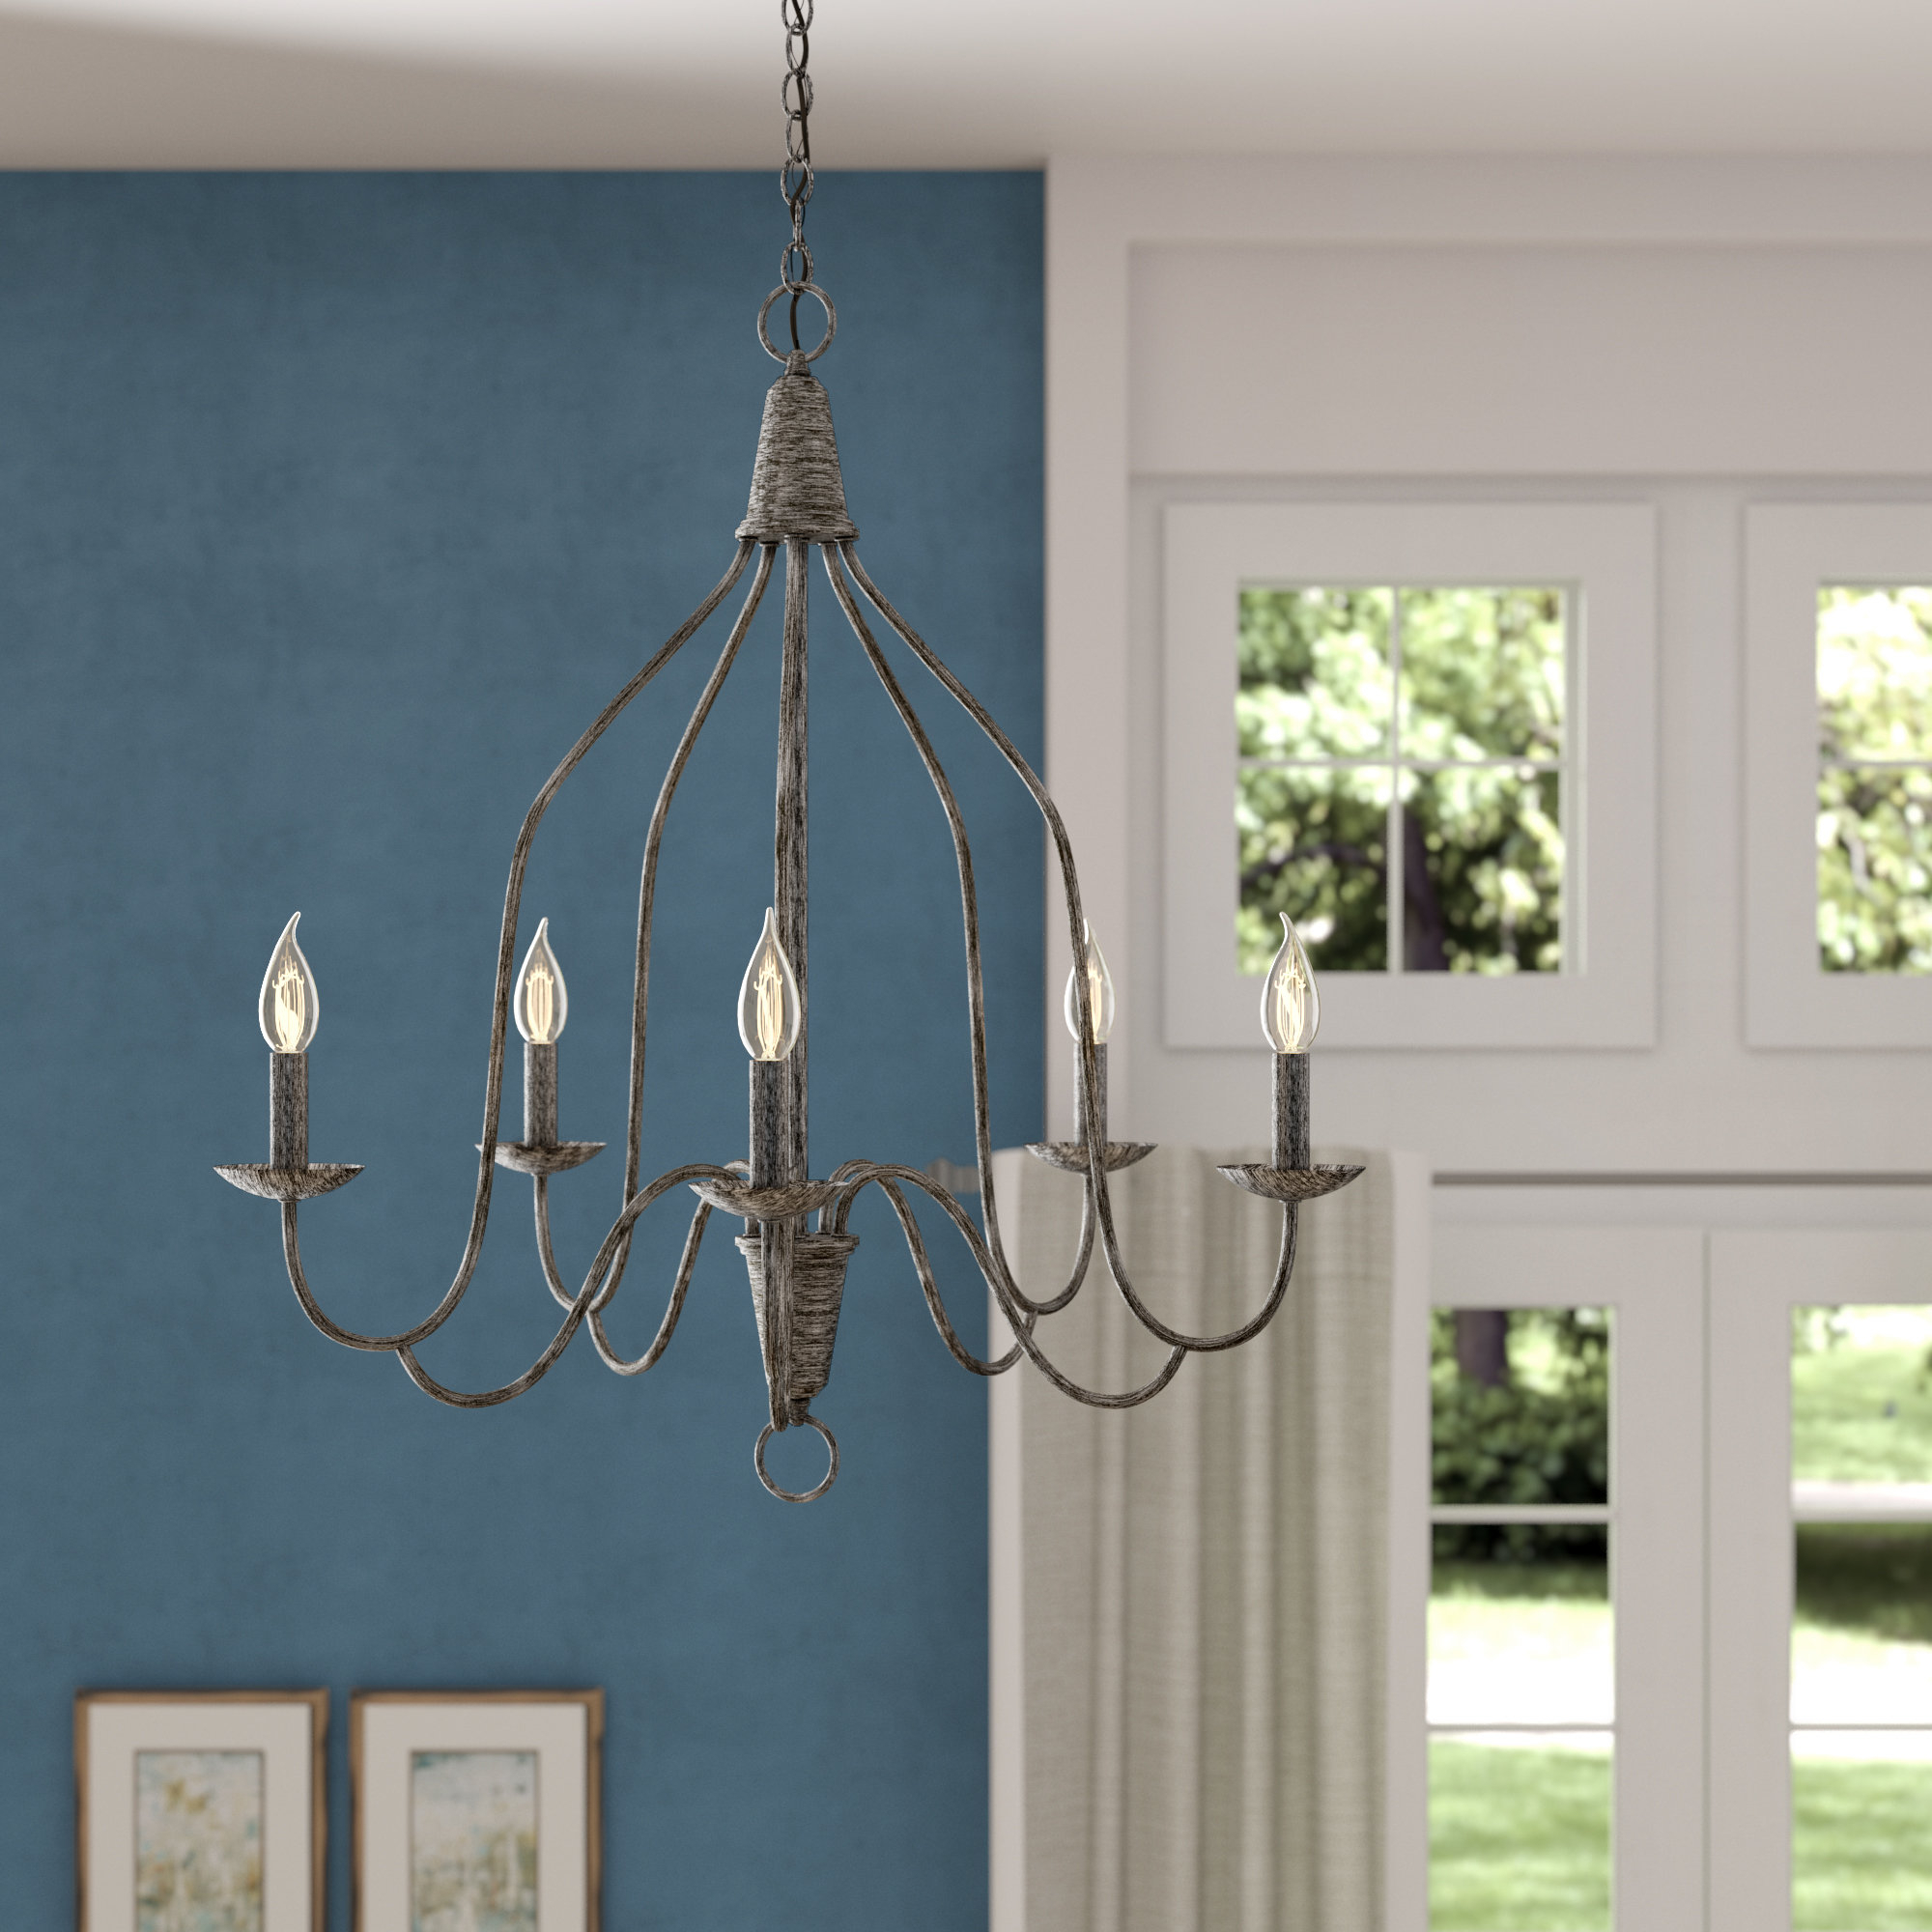 Most Recently Released Geeta 5 Light Candle Style Chandelier Inside Berger 5 Light Candle Style Chandeliers (View 10 of 20)